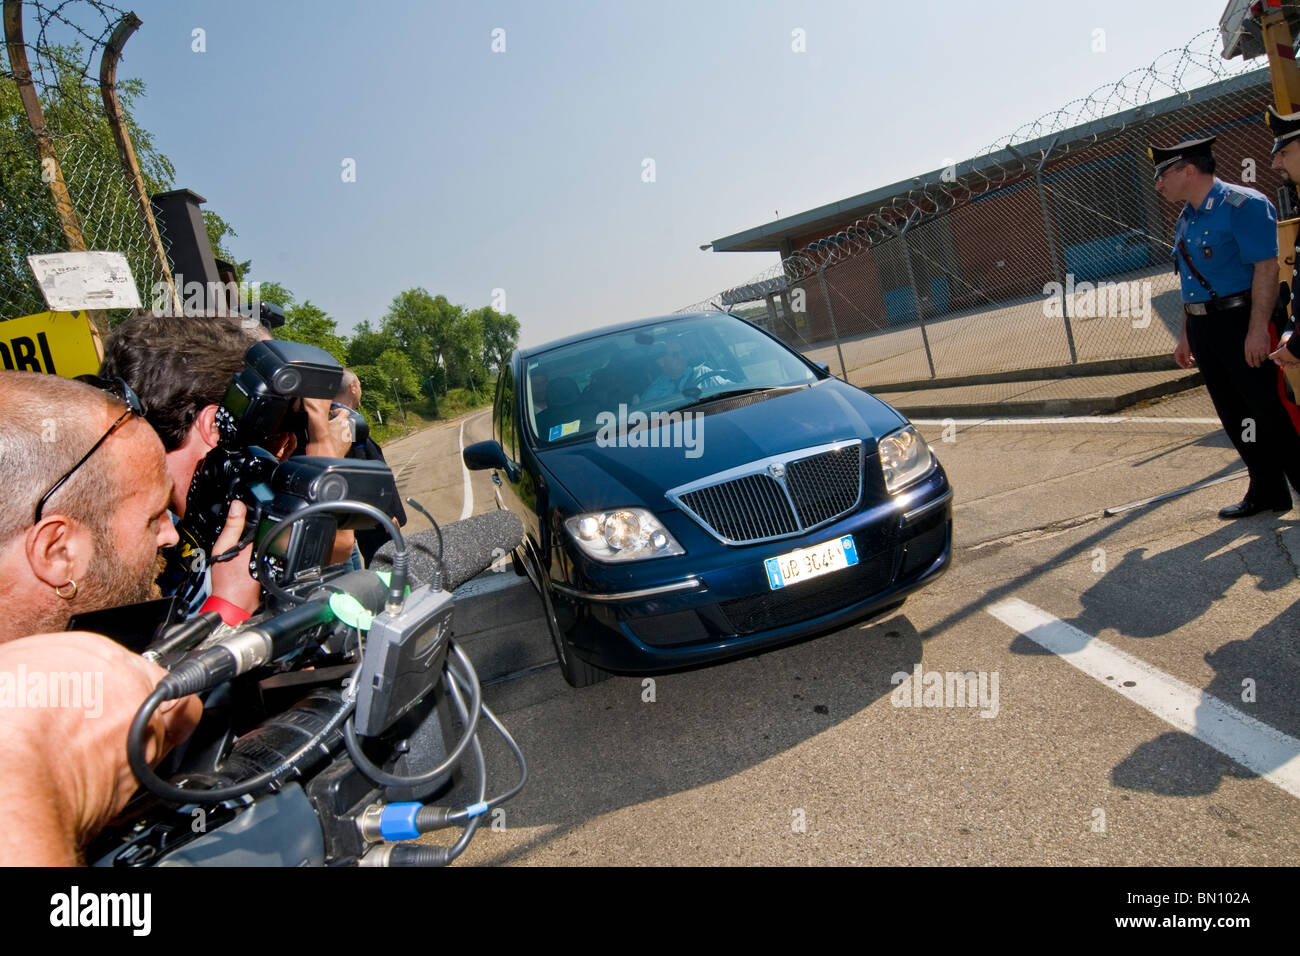 Italian national football team arrives from South Africa. Milan Malpensa airport, 26.06.2010 - Stock Image